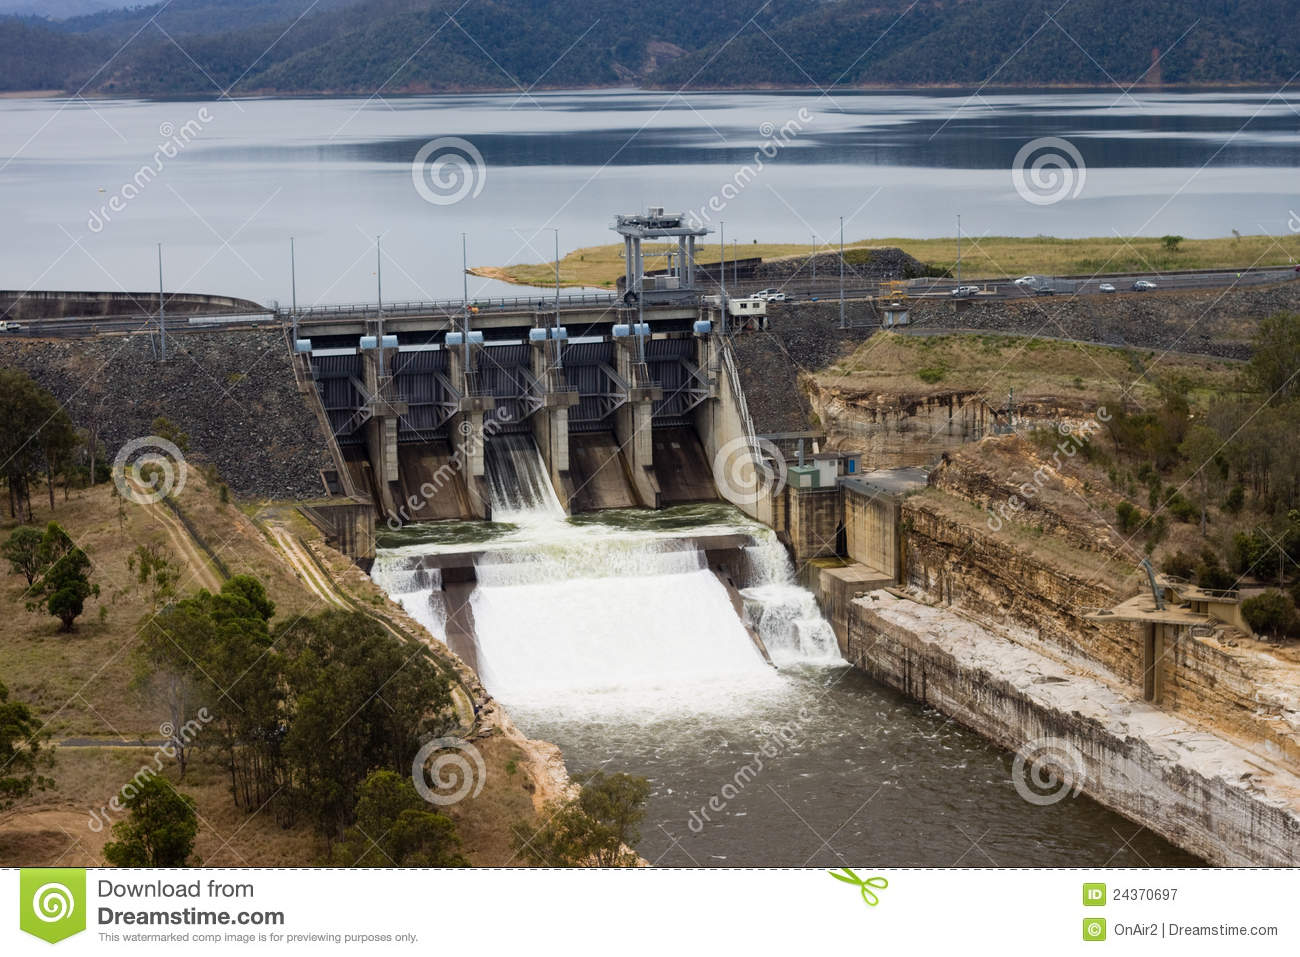 Wivenhoe Dam Spillway Releasing Water Stock Image - Image of view